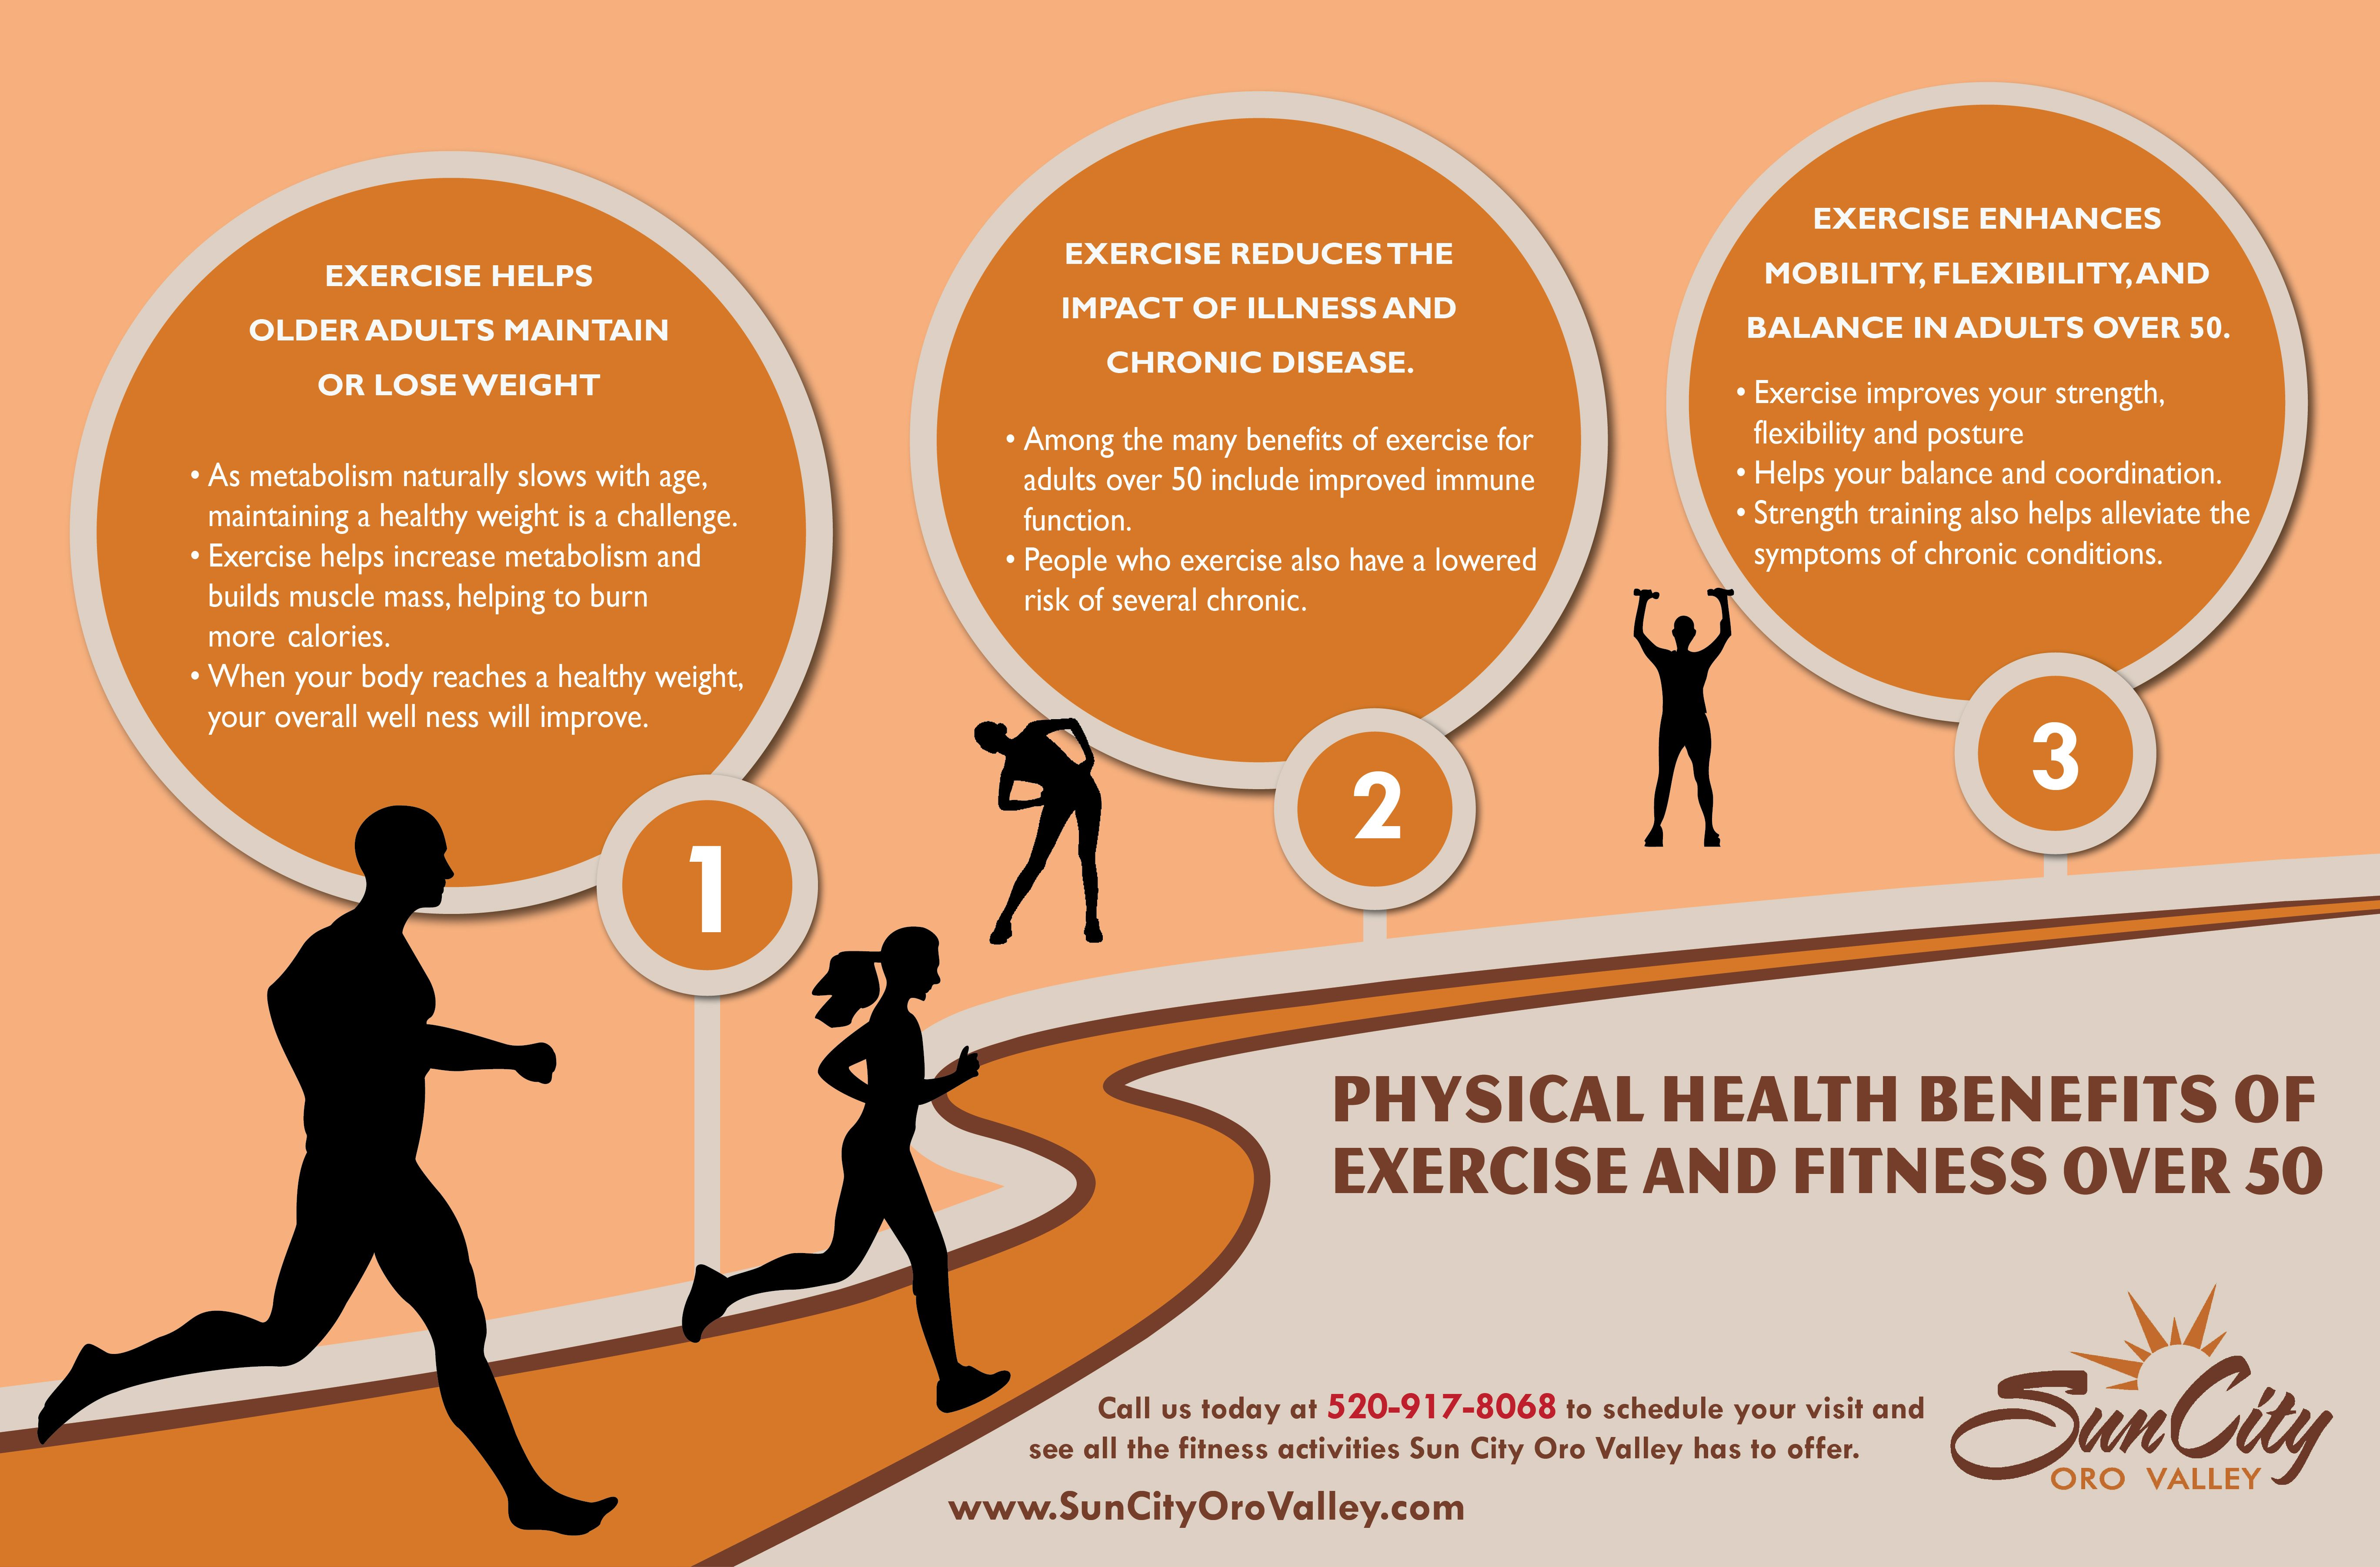 the benefits of fitness in the The benefits of exercise extend far beyond weight management research shows that regular physical activity can help reduce your risk for several diseases and health conditions and improve your overall quality of life.